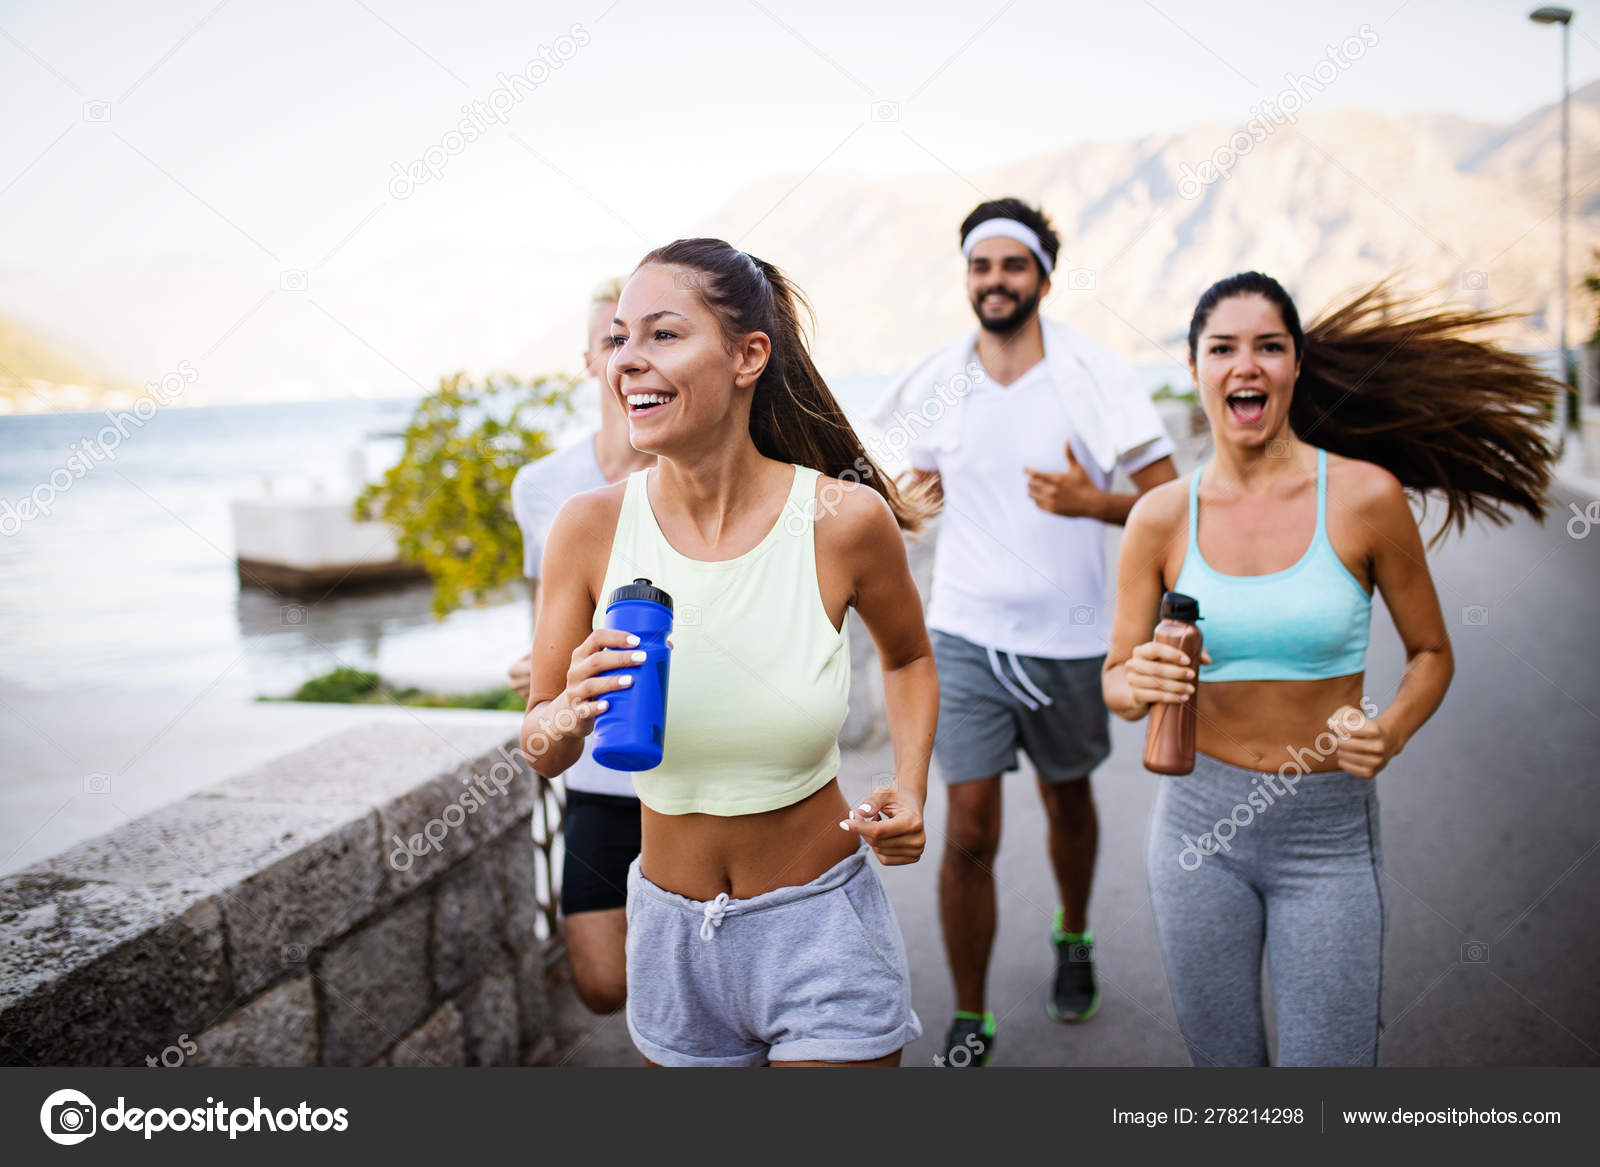 Running Sport Exercising Healthy Lifestyle Concept Happy